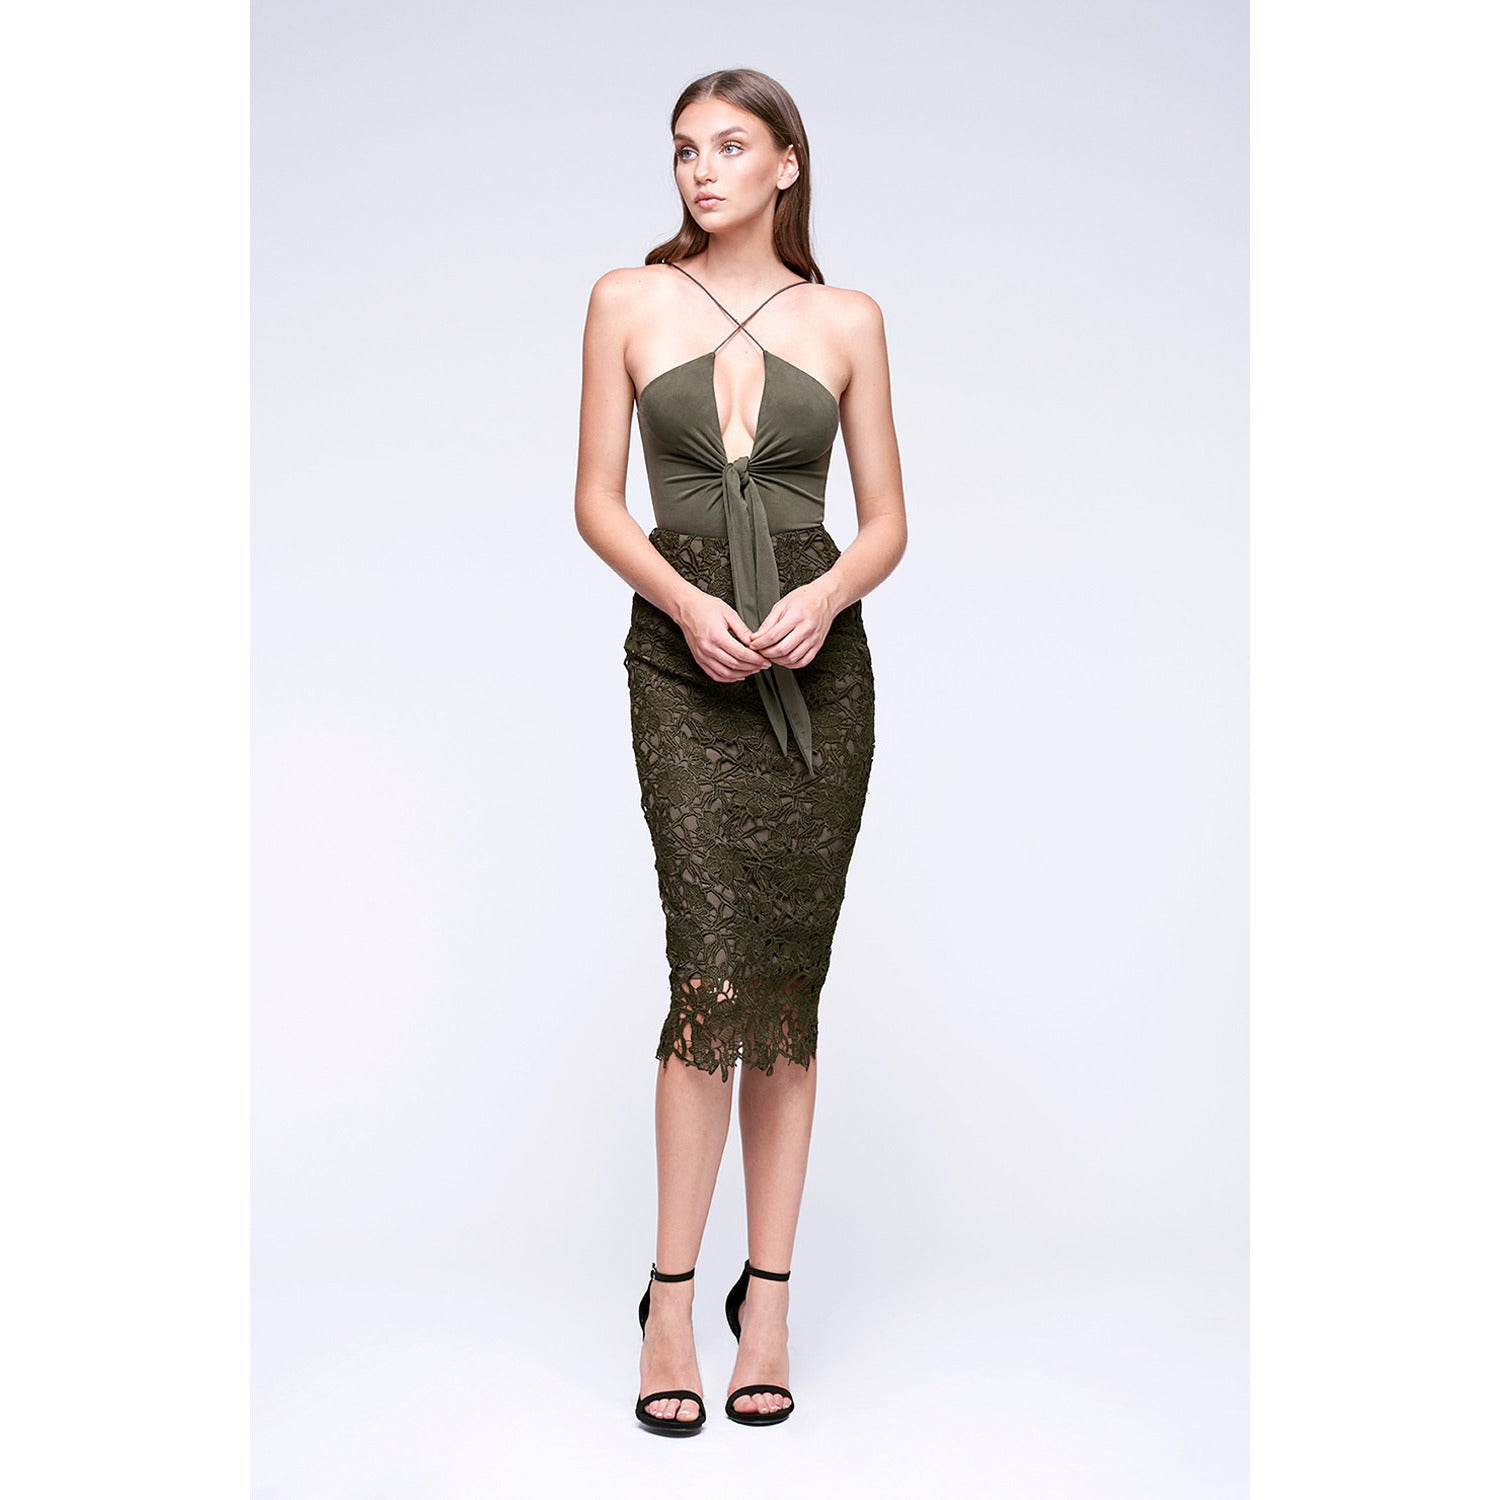 Thebes Bodysuit in Olive